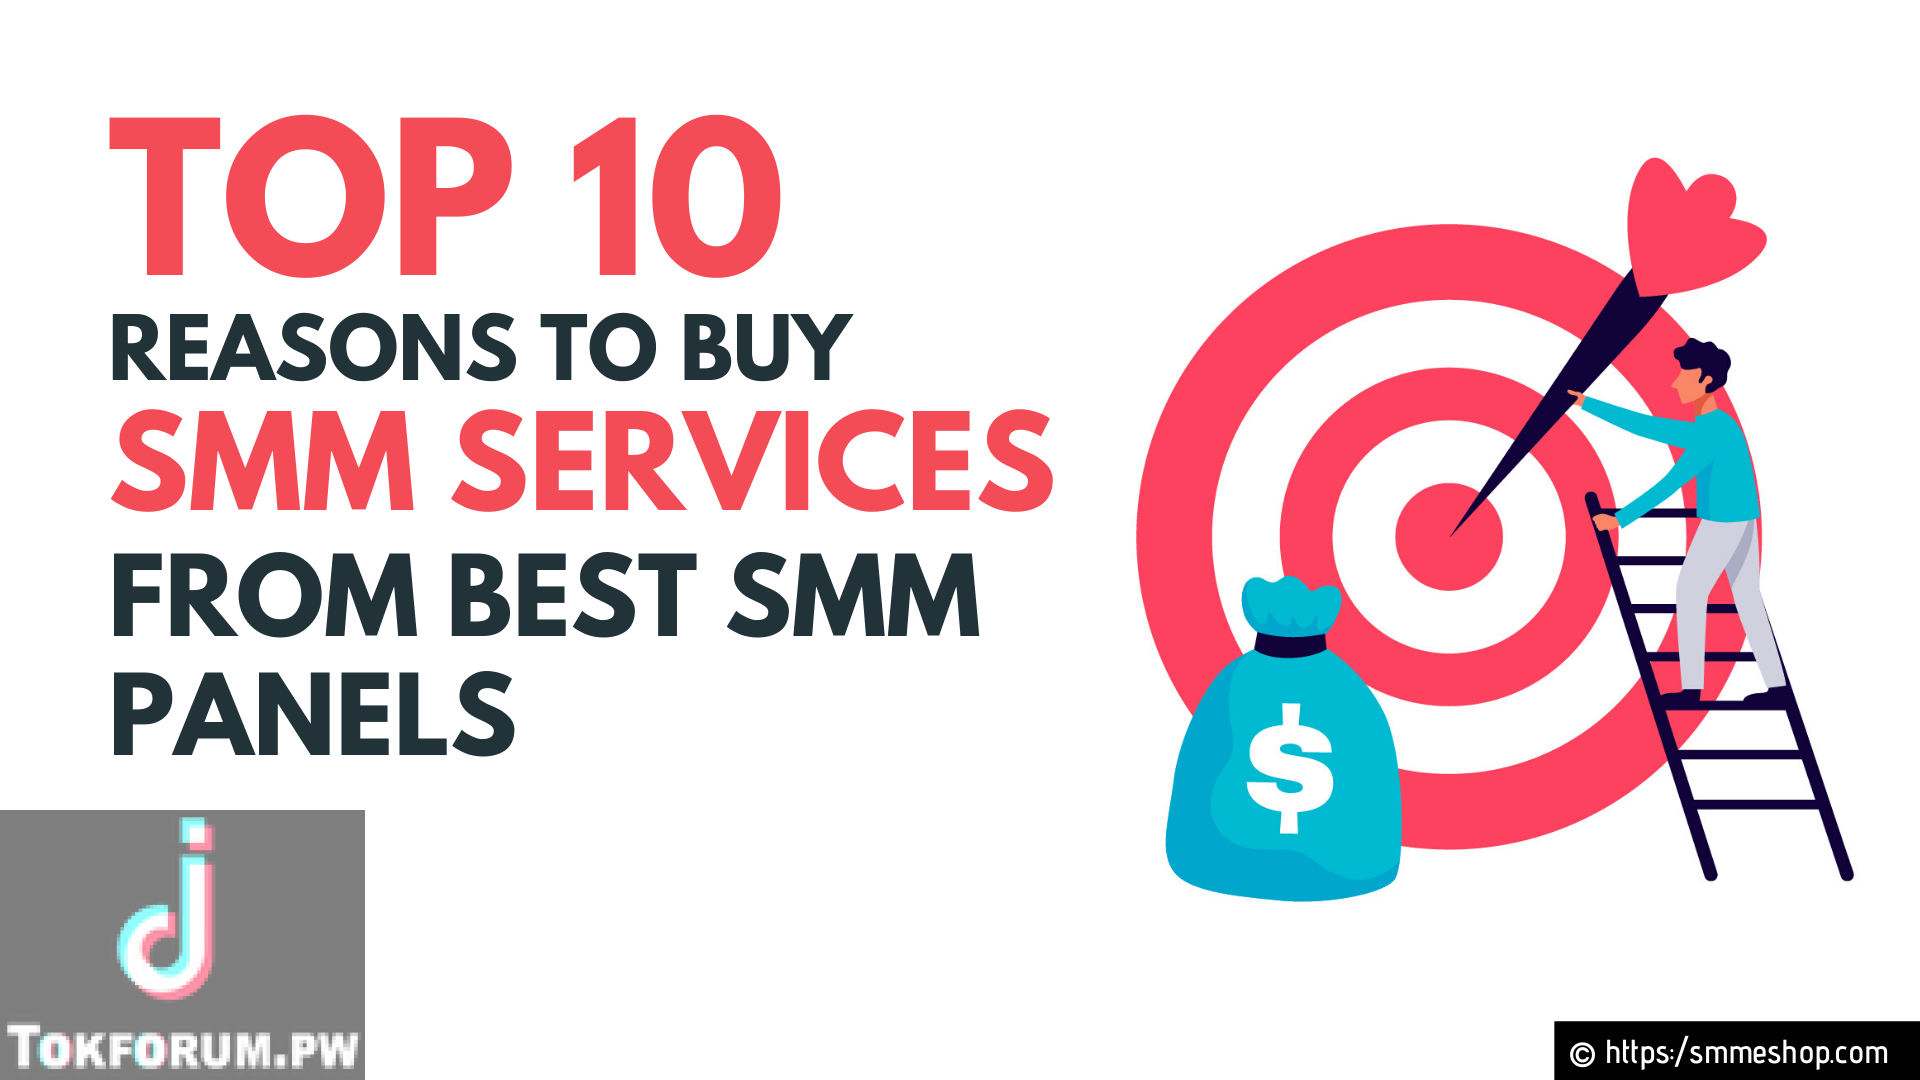 top-10-reasons-to-buy-smm-services-from-best-smm-panels_h1587744400-png.918